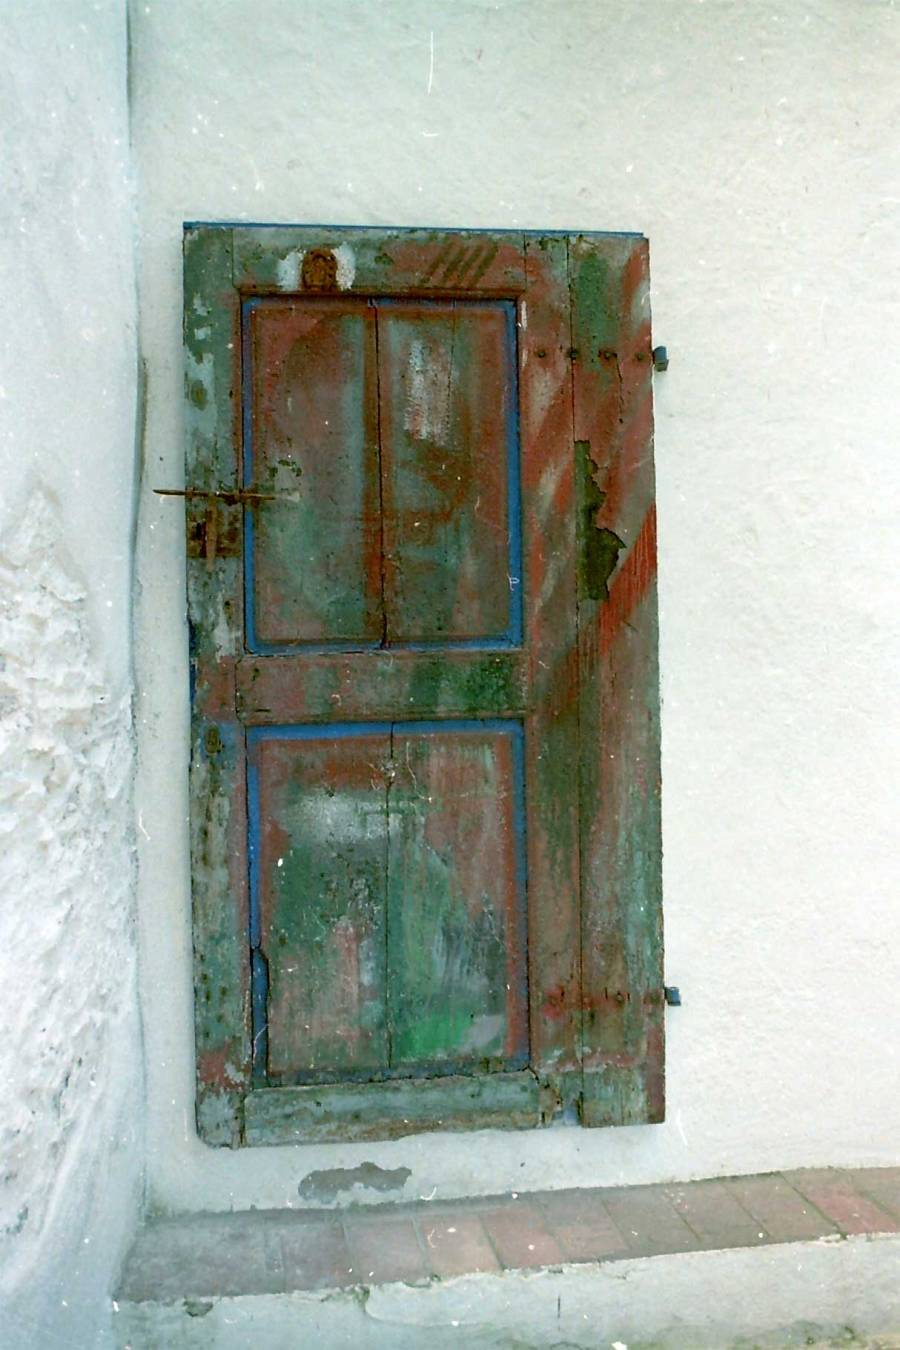 Door to the sea side, at the Dali compound in Port Liggat, Spain. photo:napob95